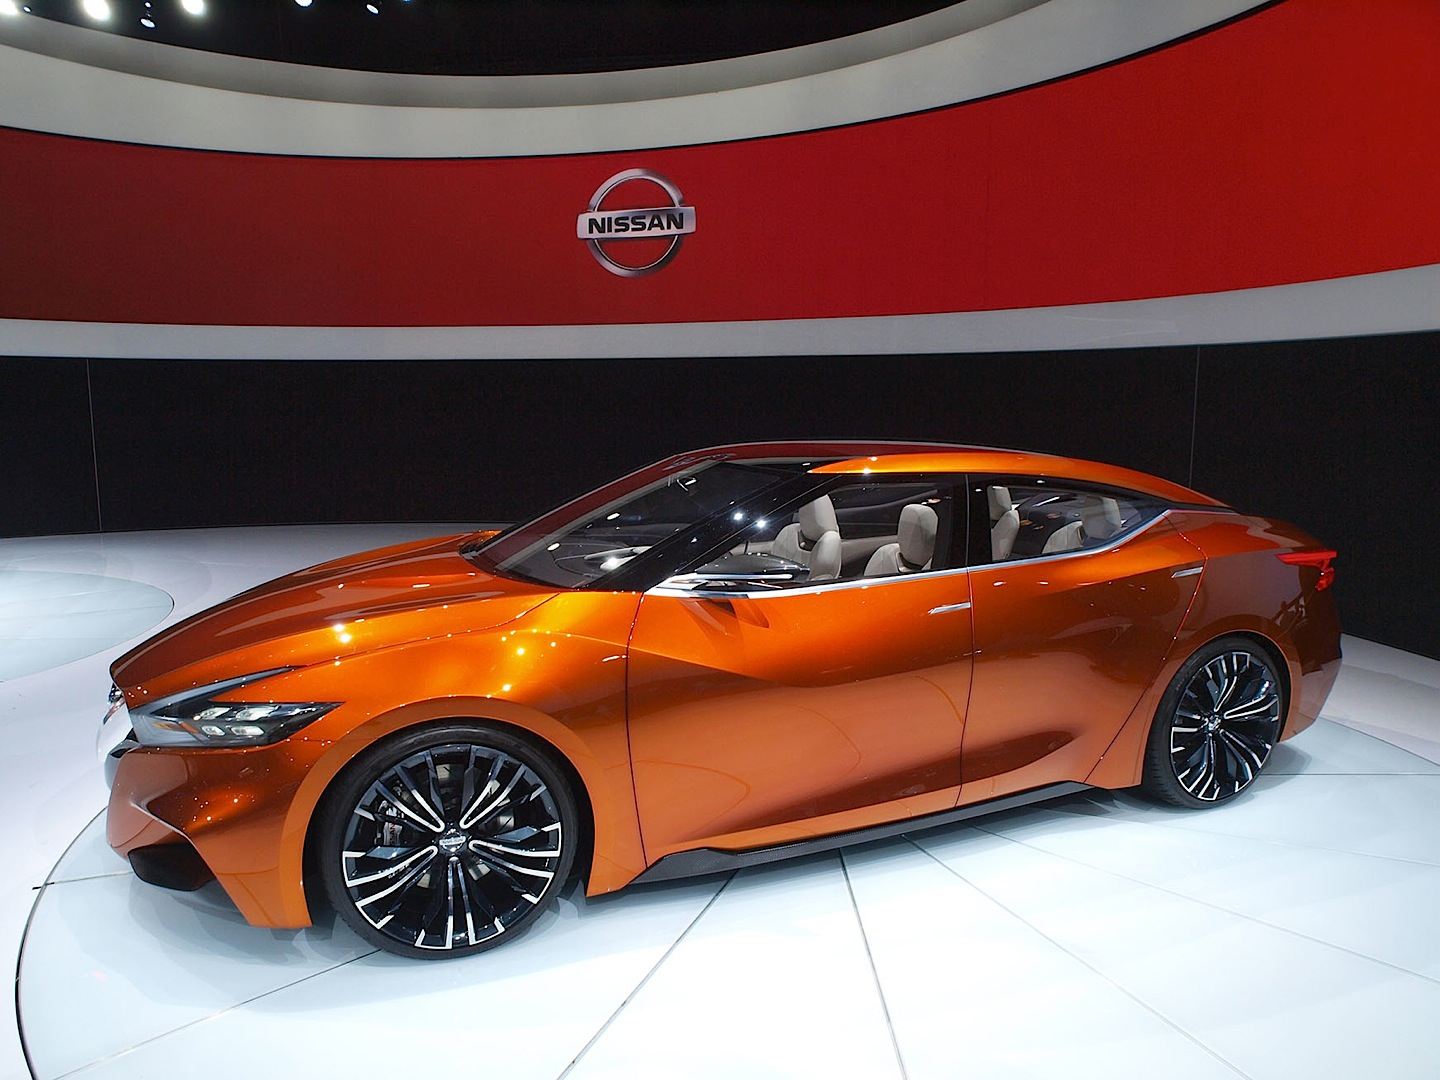 Nissan Sports Sedan Previews The 2015 Maxima Has Attitude